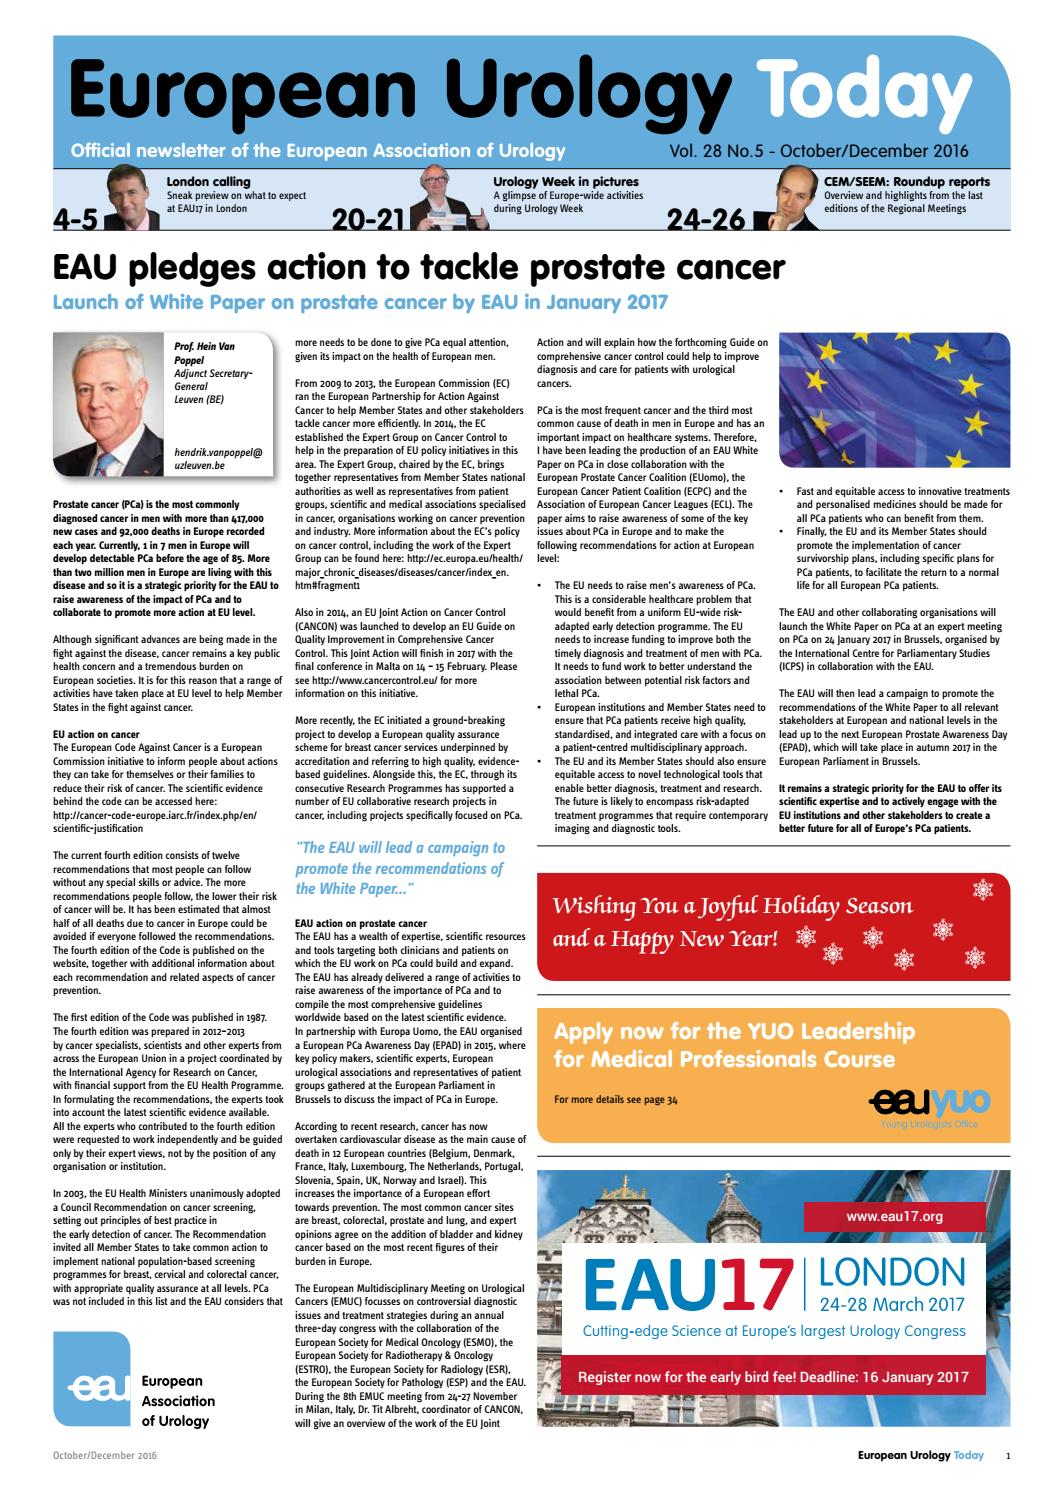 European Urology Today October/December 2016 by European